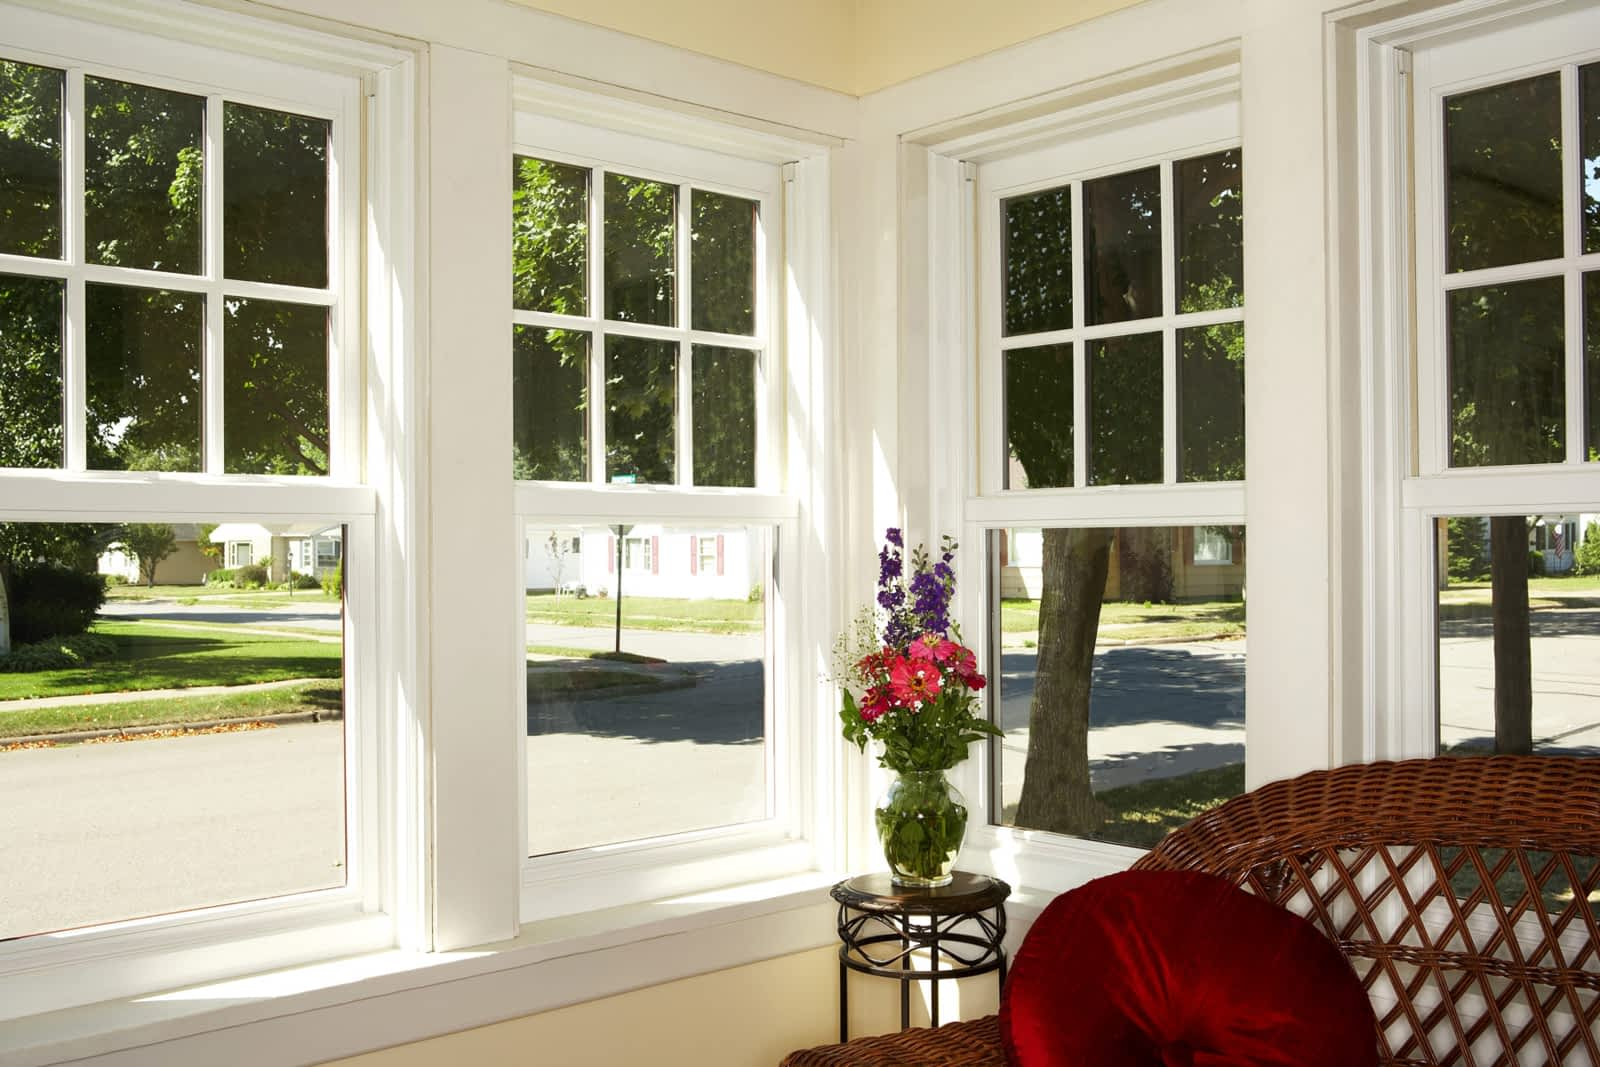 5 tips for selecting windows